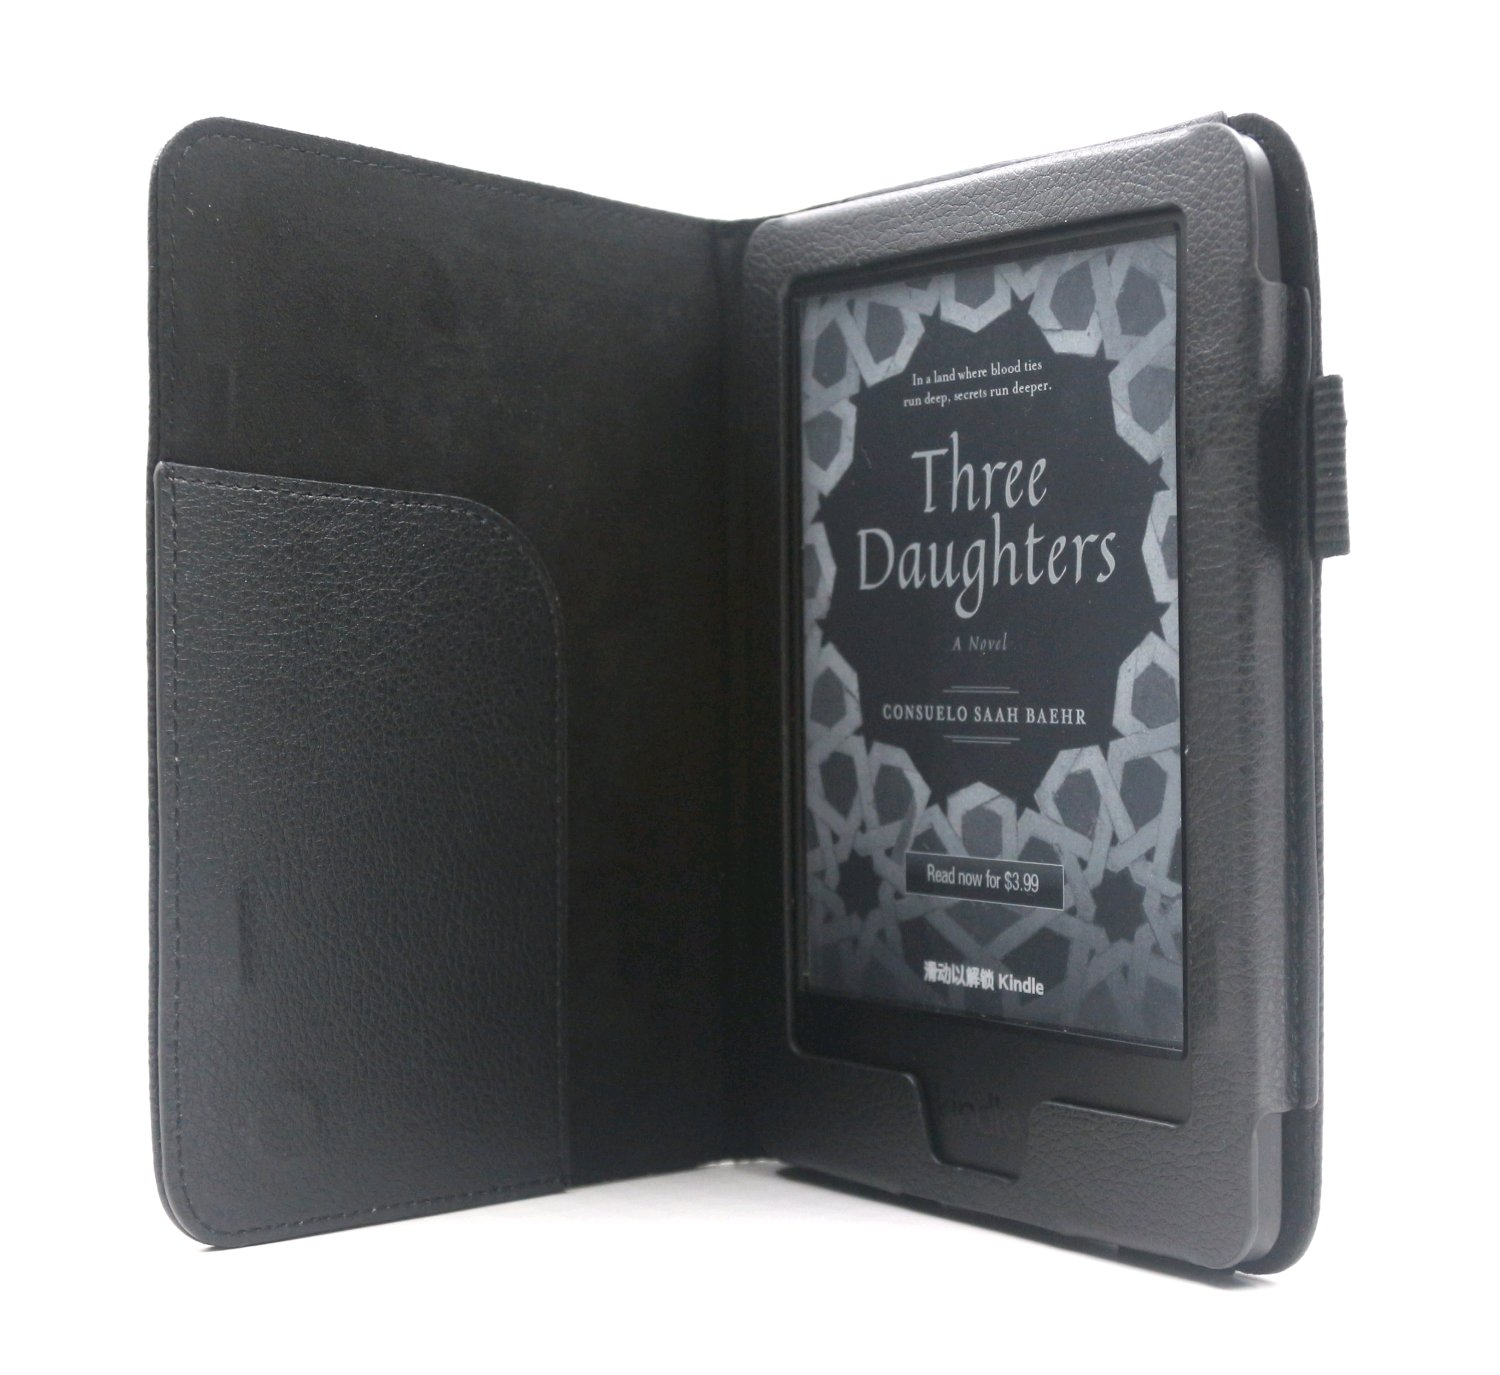 Amazon Kindle C-TECH PROTECT pouzdro pro Amazon Kindle 6 TOUCH, WAKE/SLEEP funkce,AKC-08, černéVýrobceC-TECH